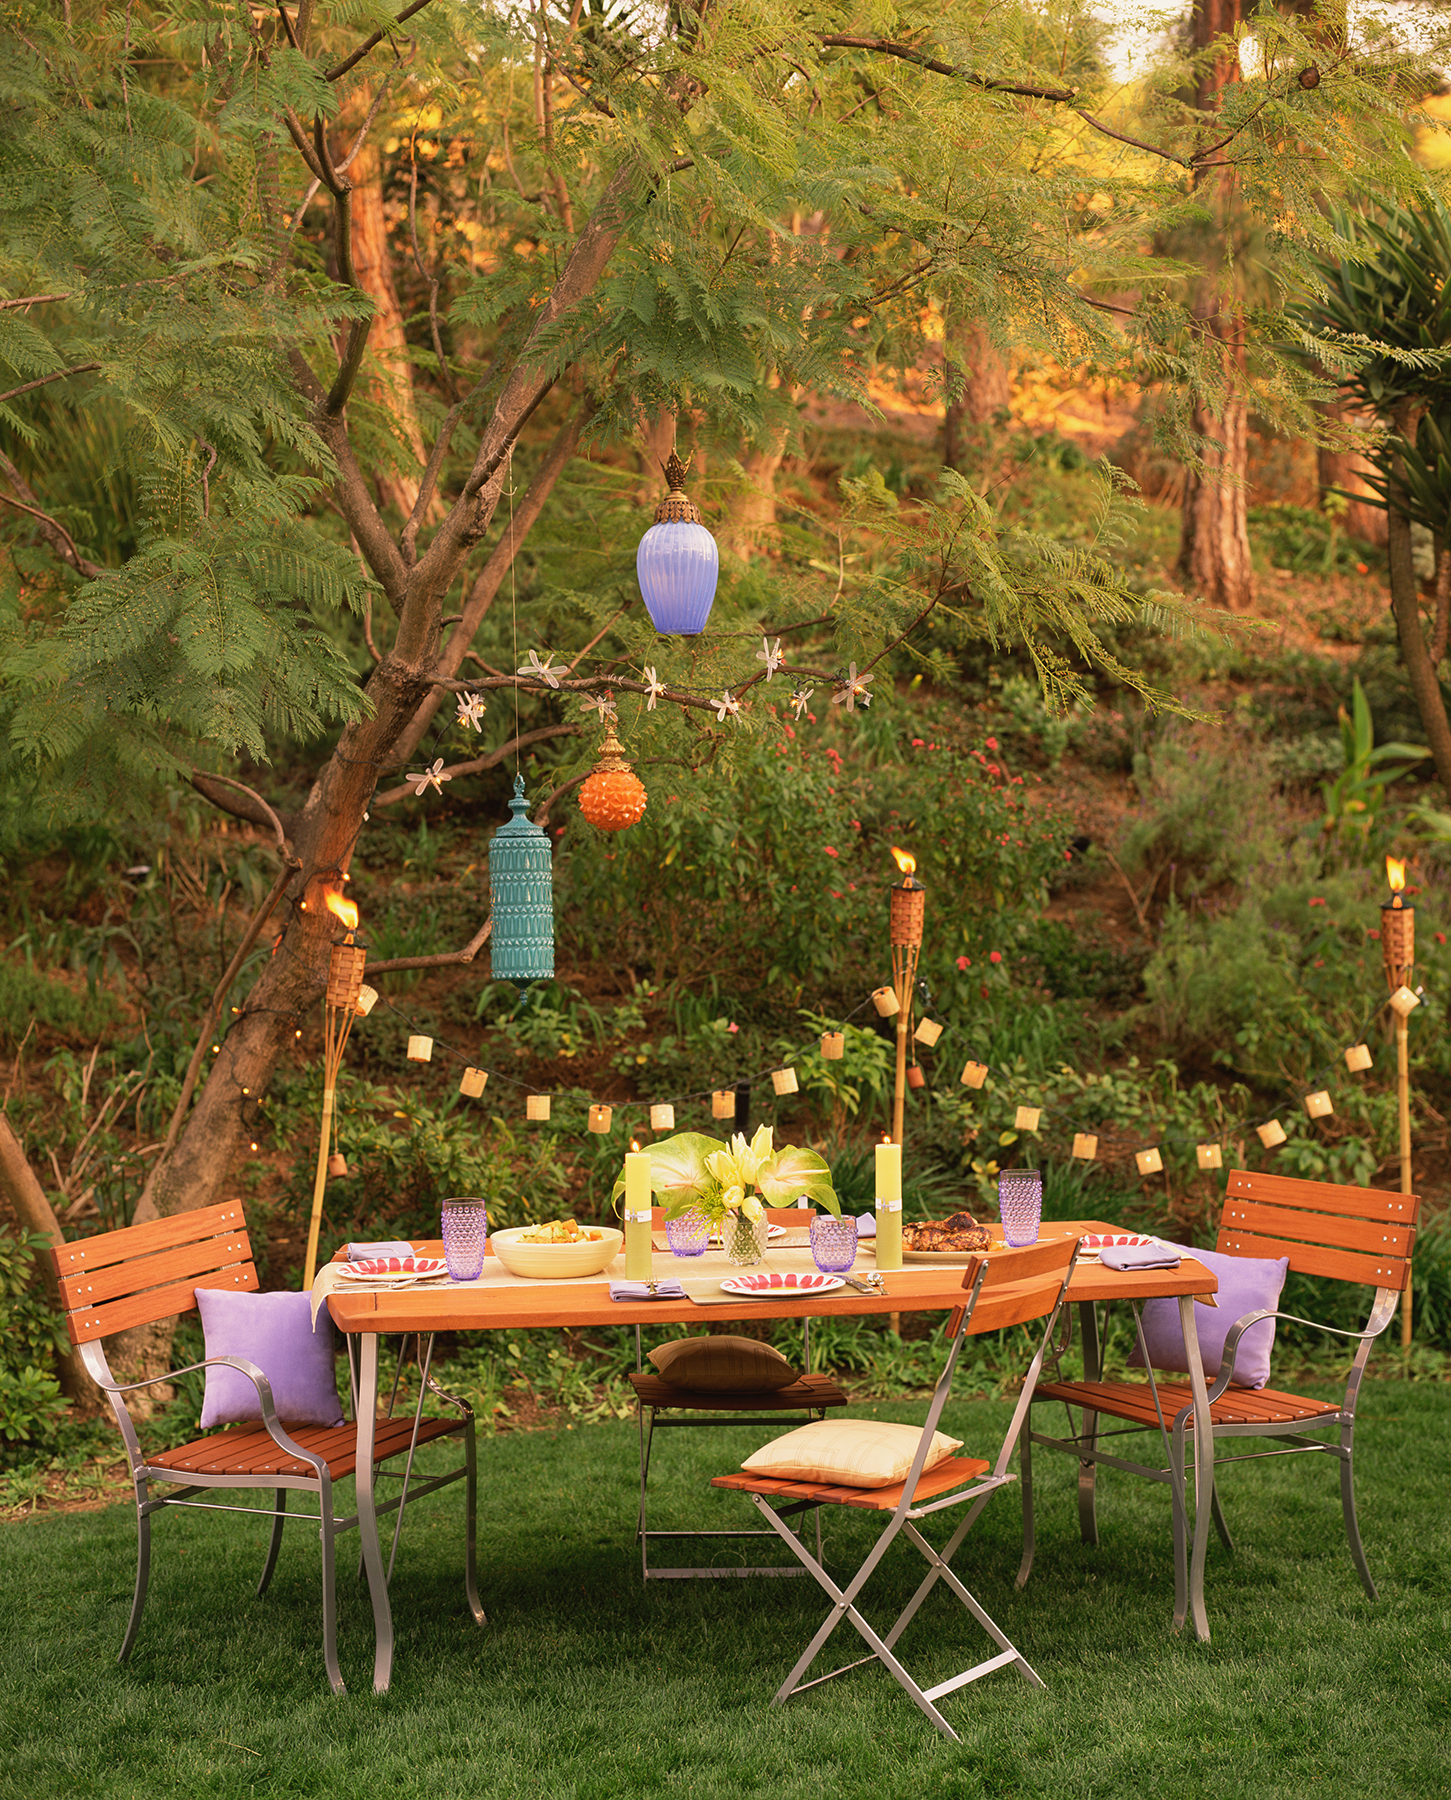 Outdoor table and chairs with hanging lights